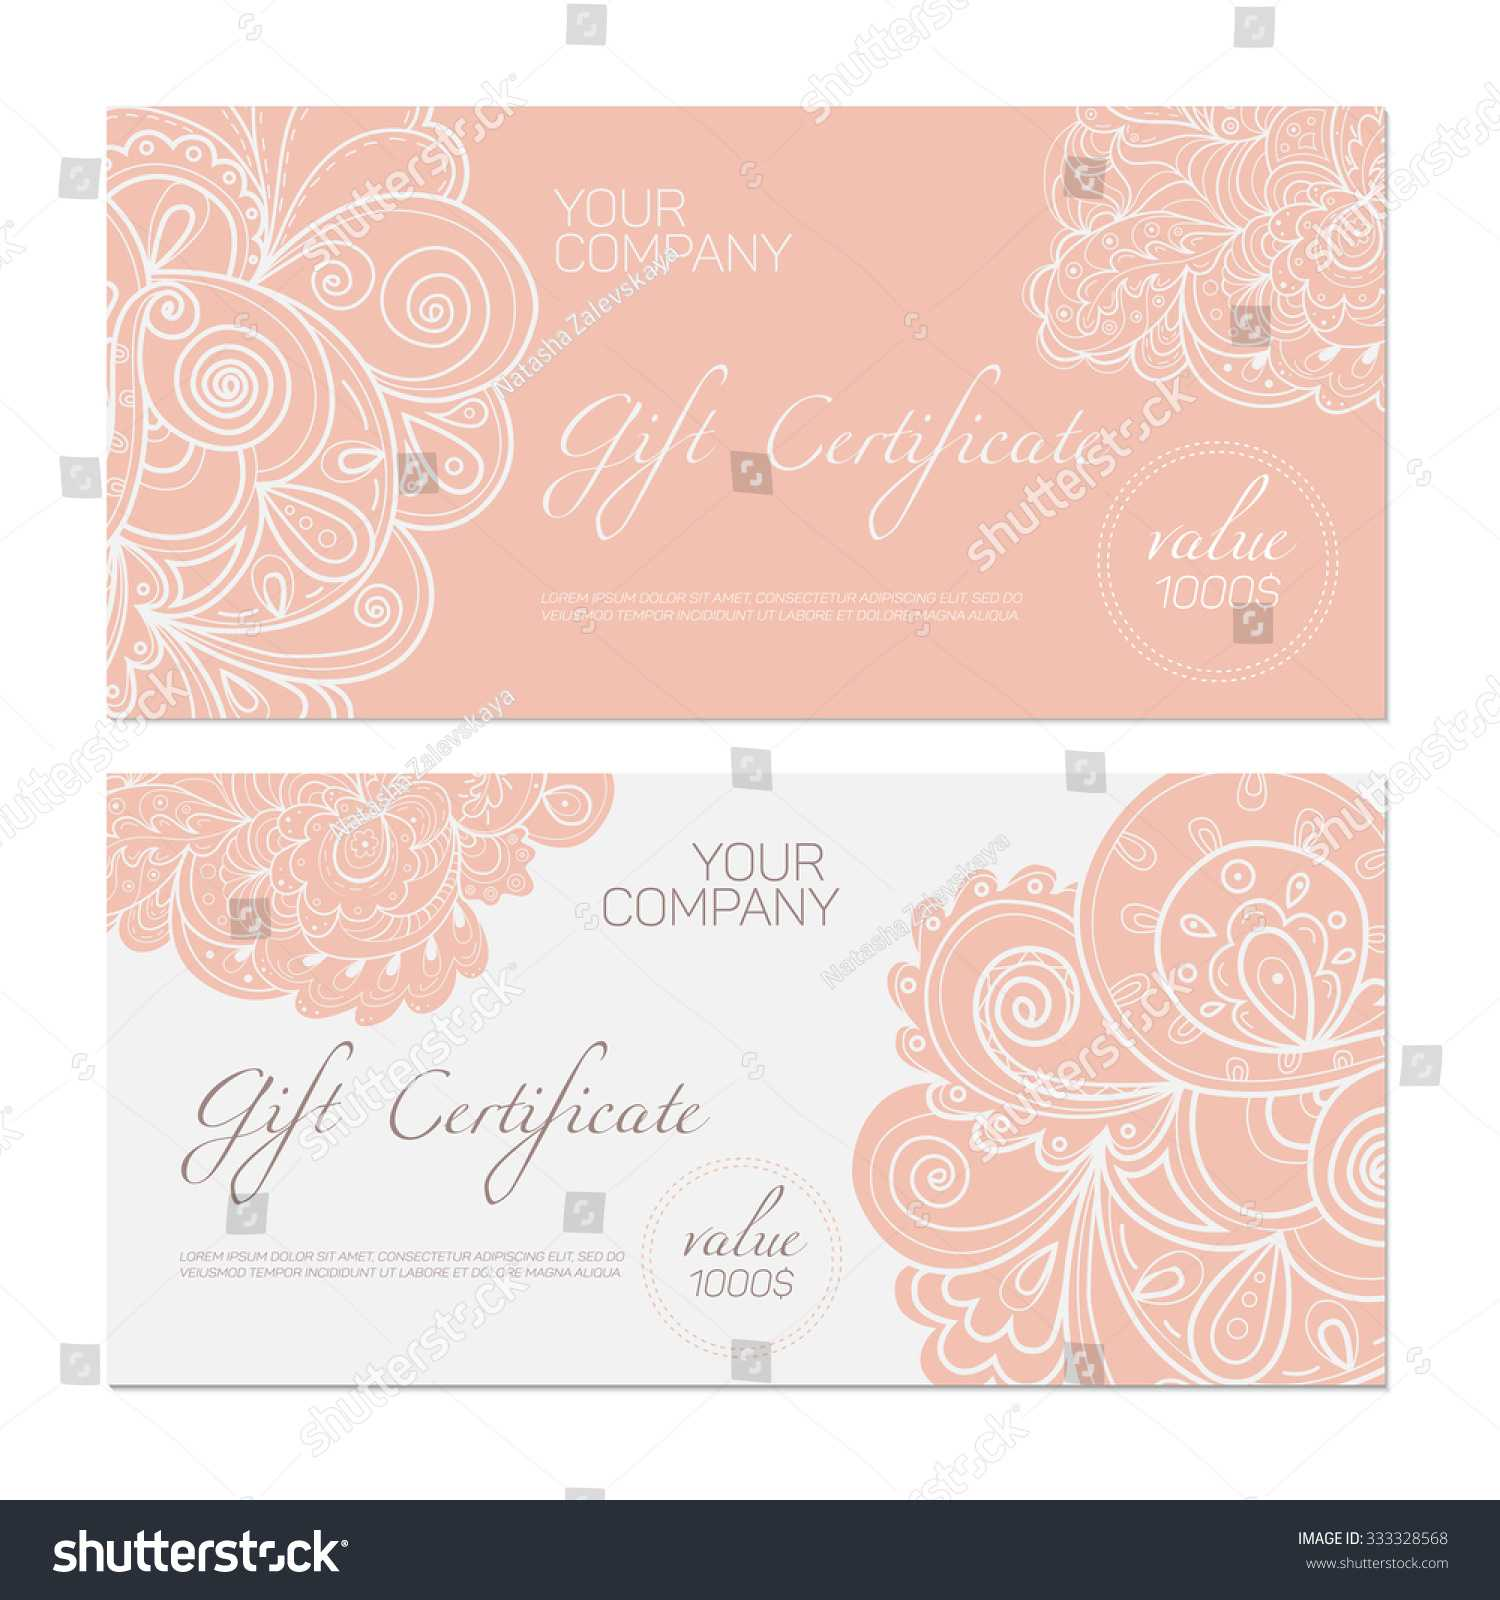 Elegant Gift Certificate Template Abstract Ornamental Throughout Elegant Gift Certificate Template